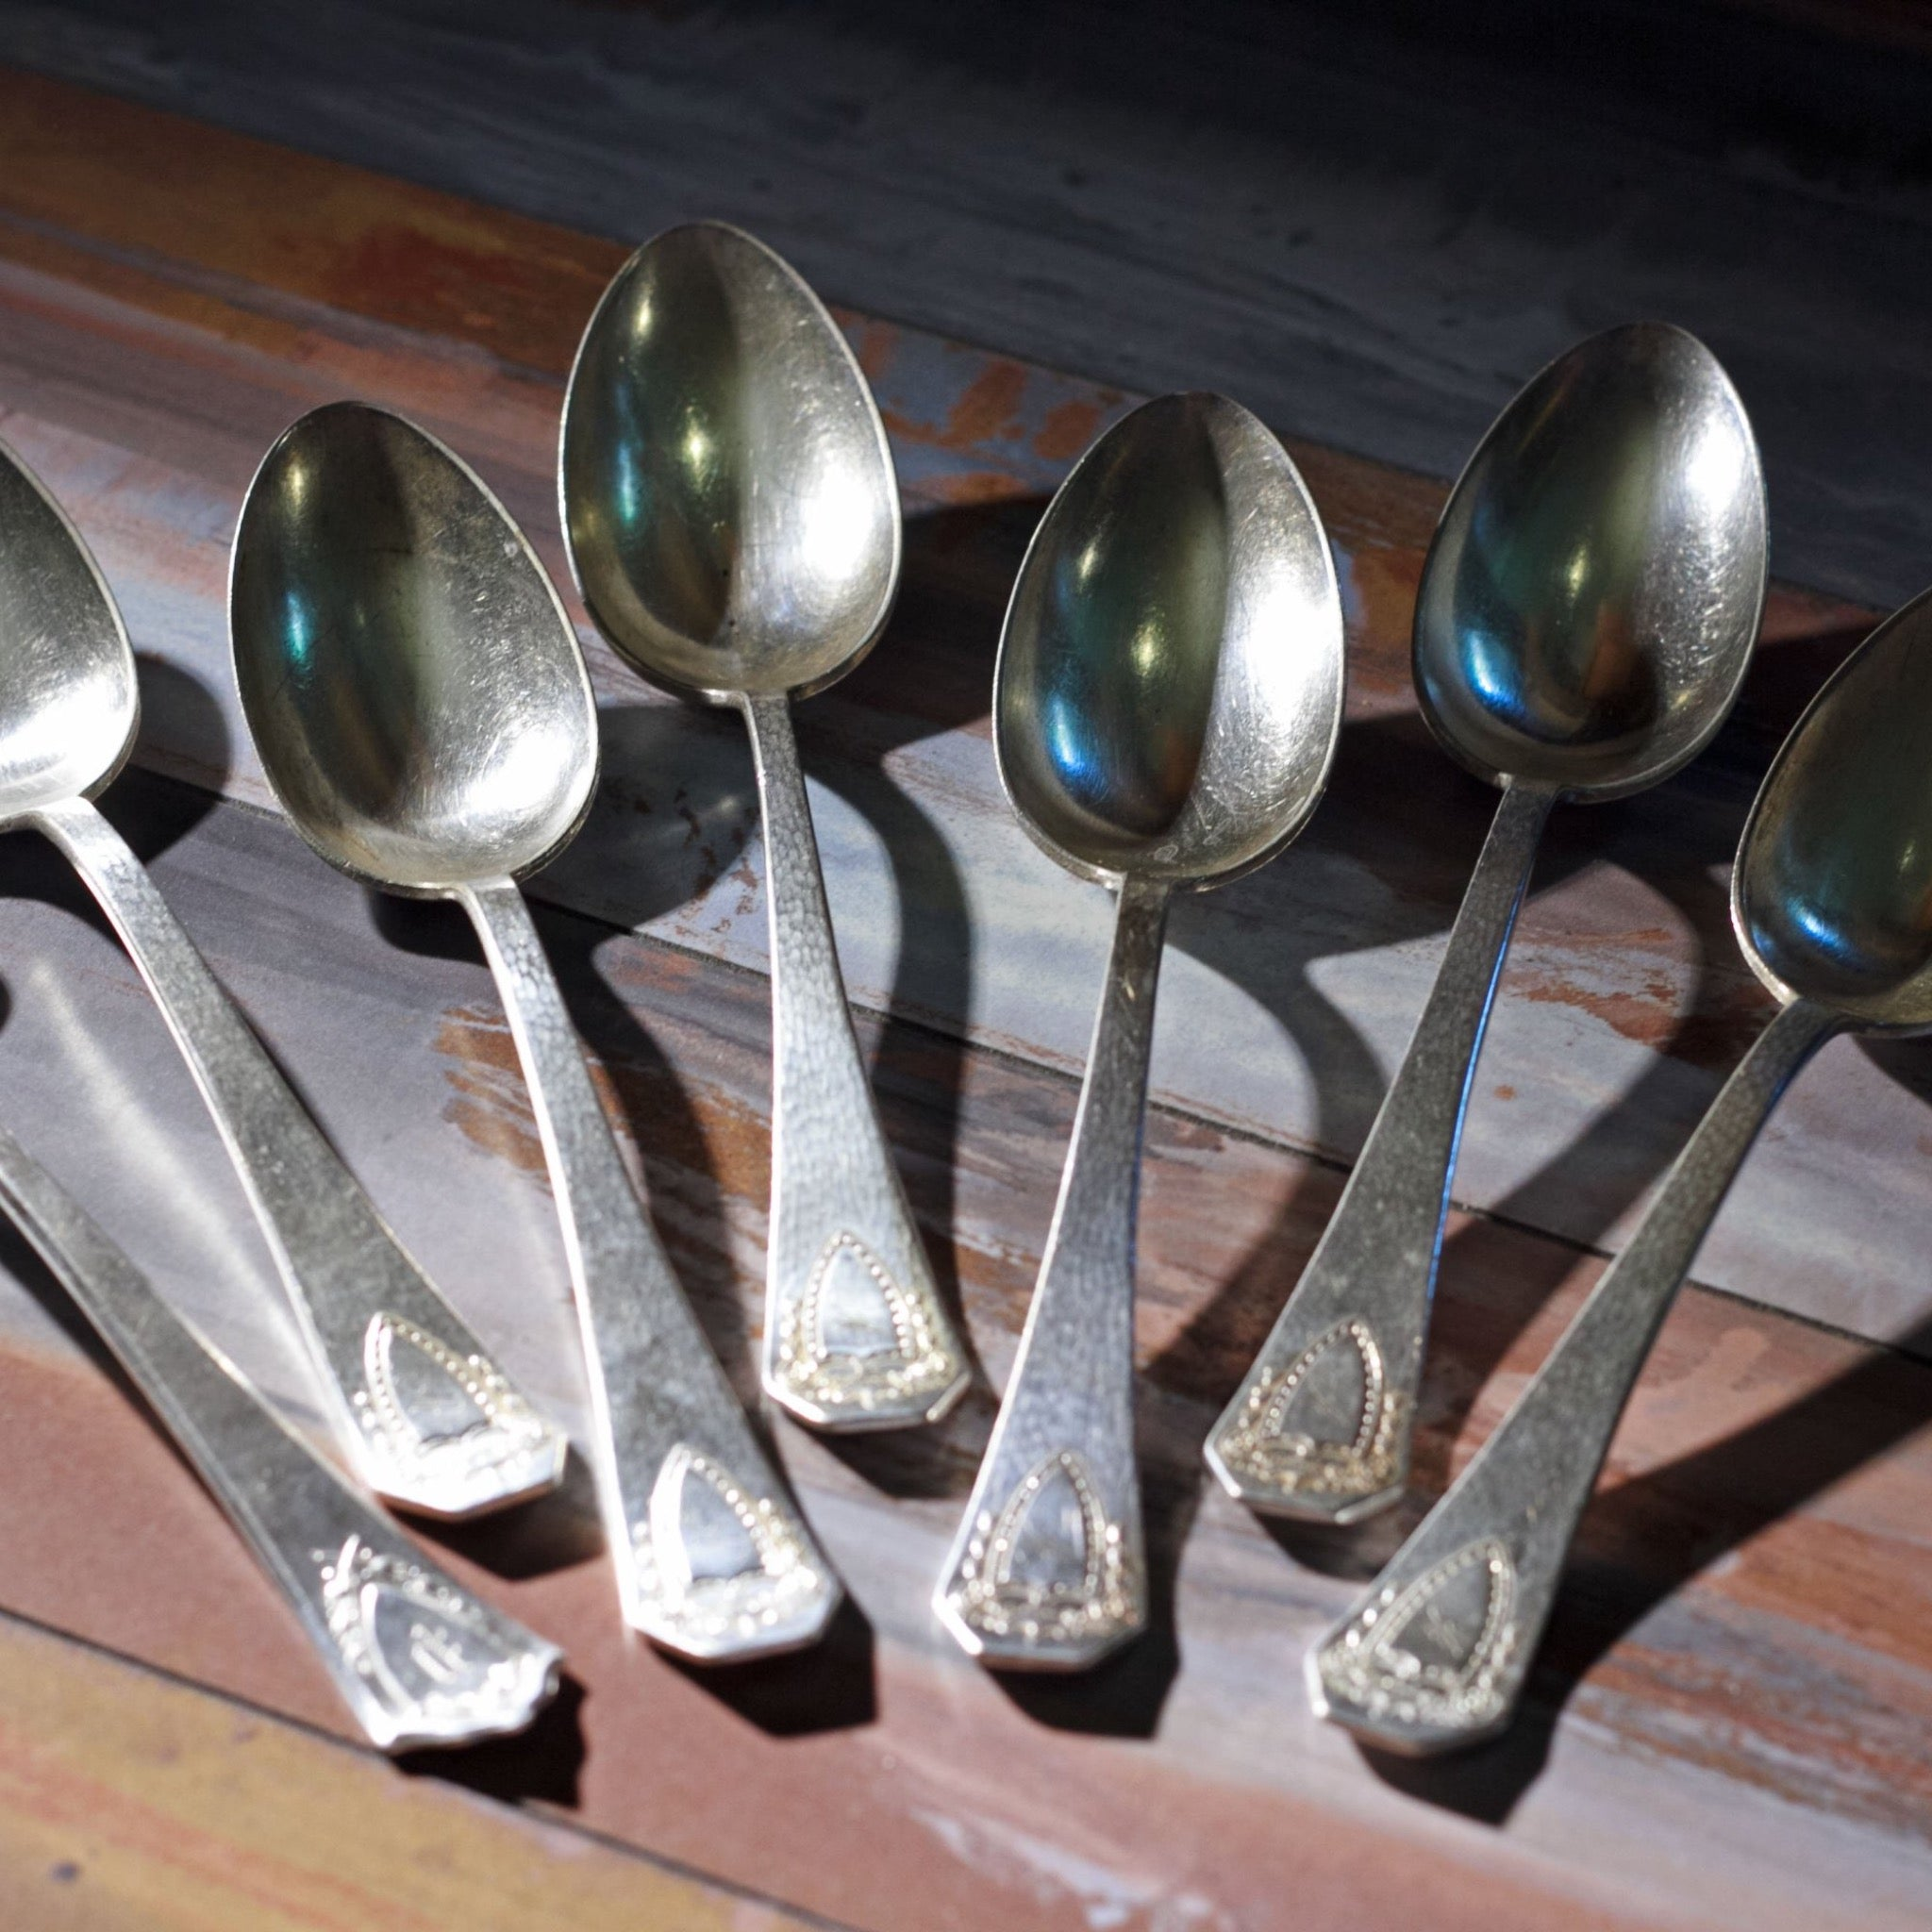 HERALDIC SILVER PLATE SERVING SPOONS by Rogers Brothers Set of Six (6)